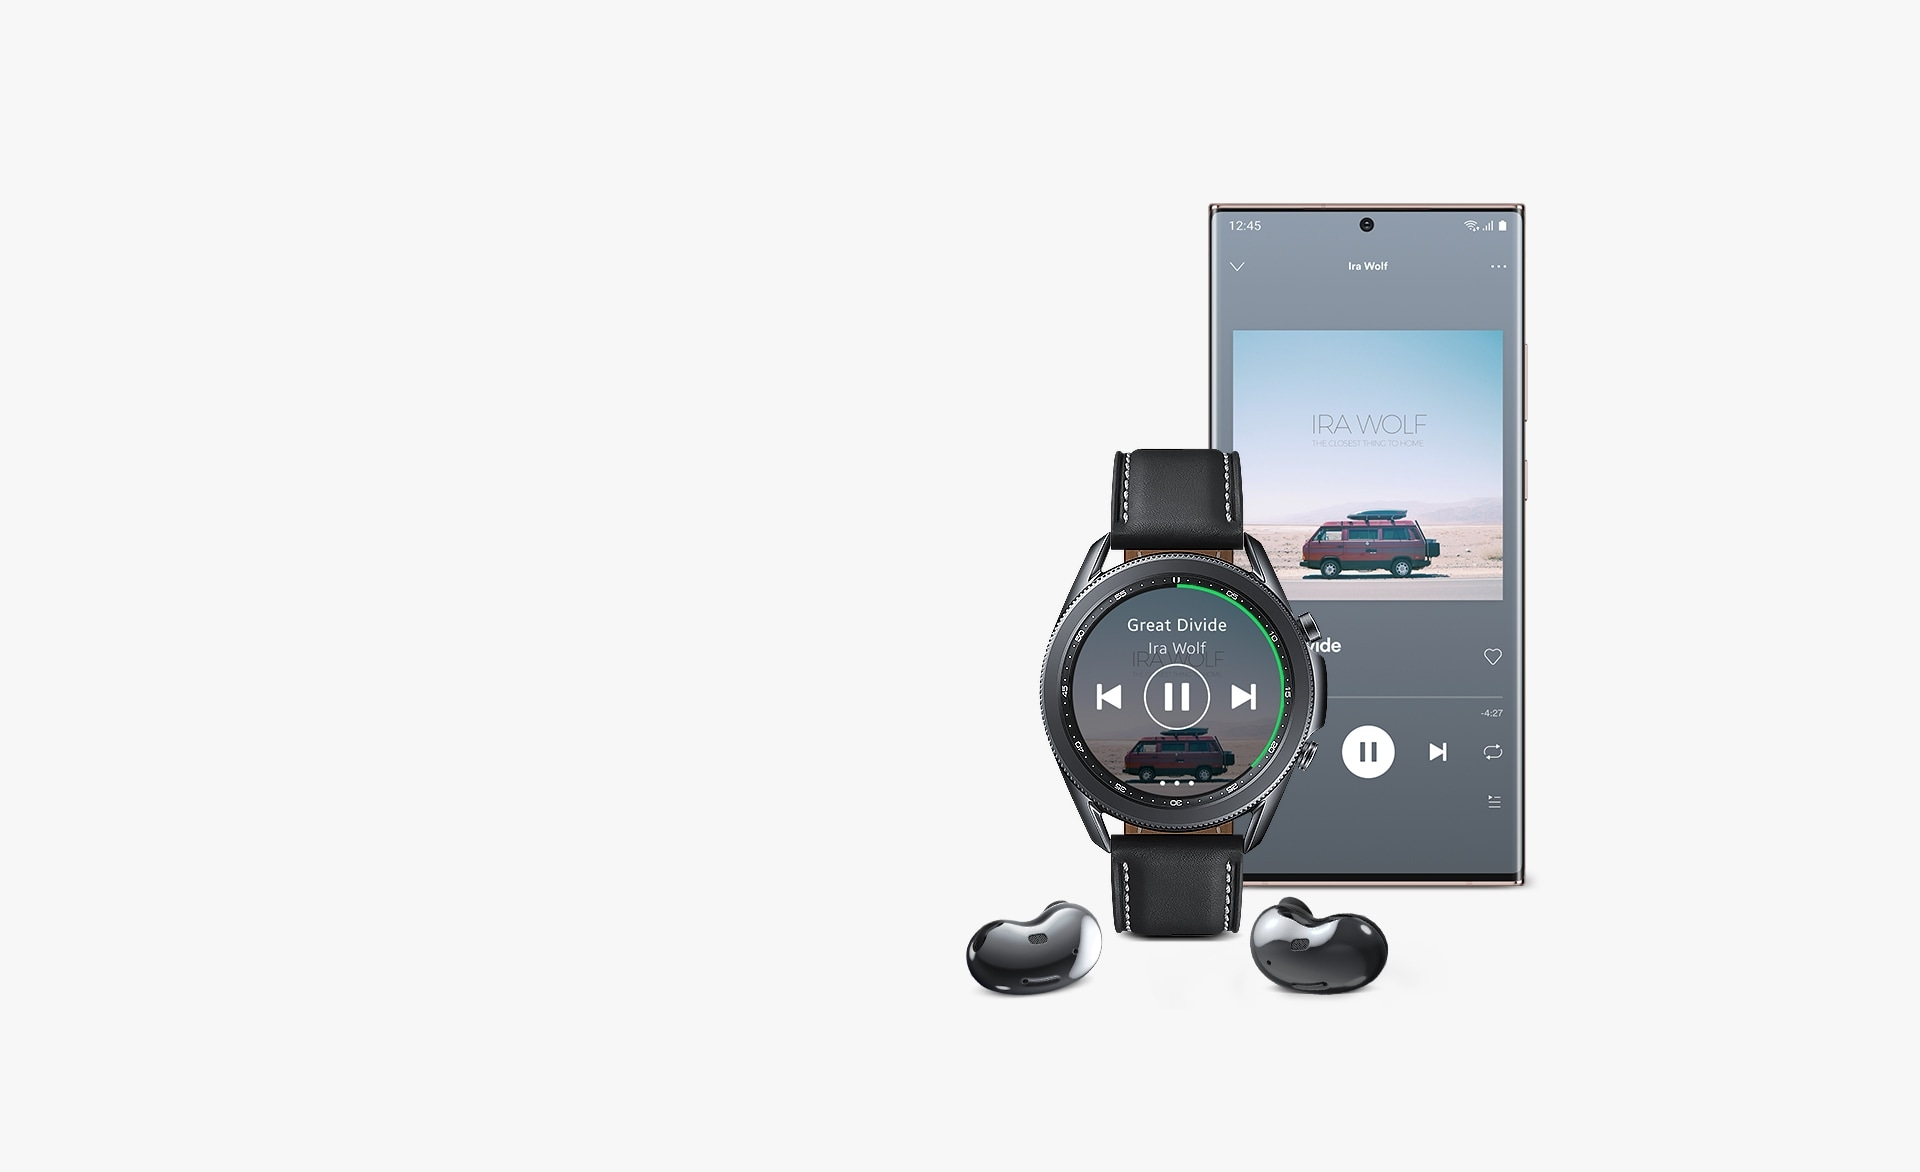 Front view of 45mm Galaxy Watch3 in Mystic Black next to a Galaxy smartphone and Galaxy Buds Live. The watch and smartphone display the same Spotify GUI, showing how you can play music on Galaxy Buds Live and seamlessly control it through Galaxy Watch3.